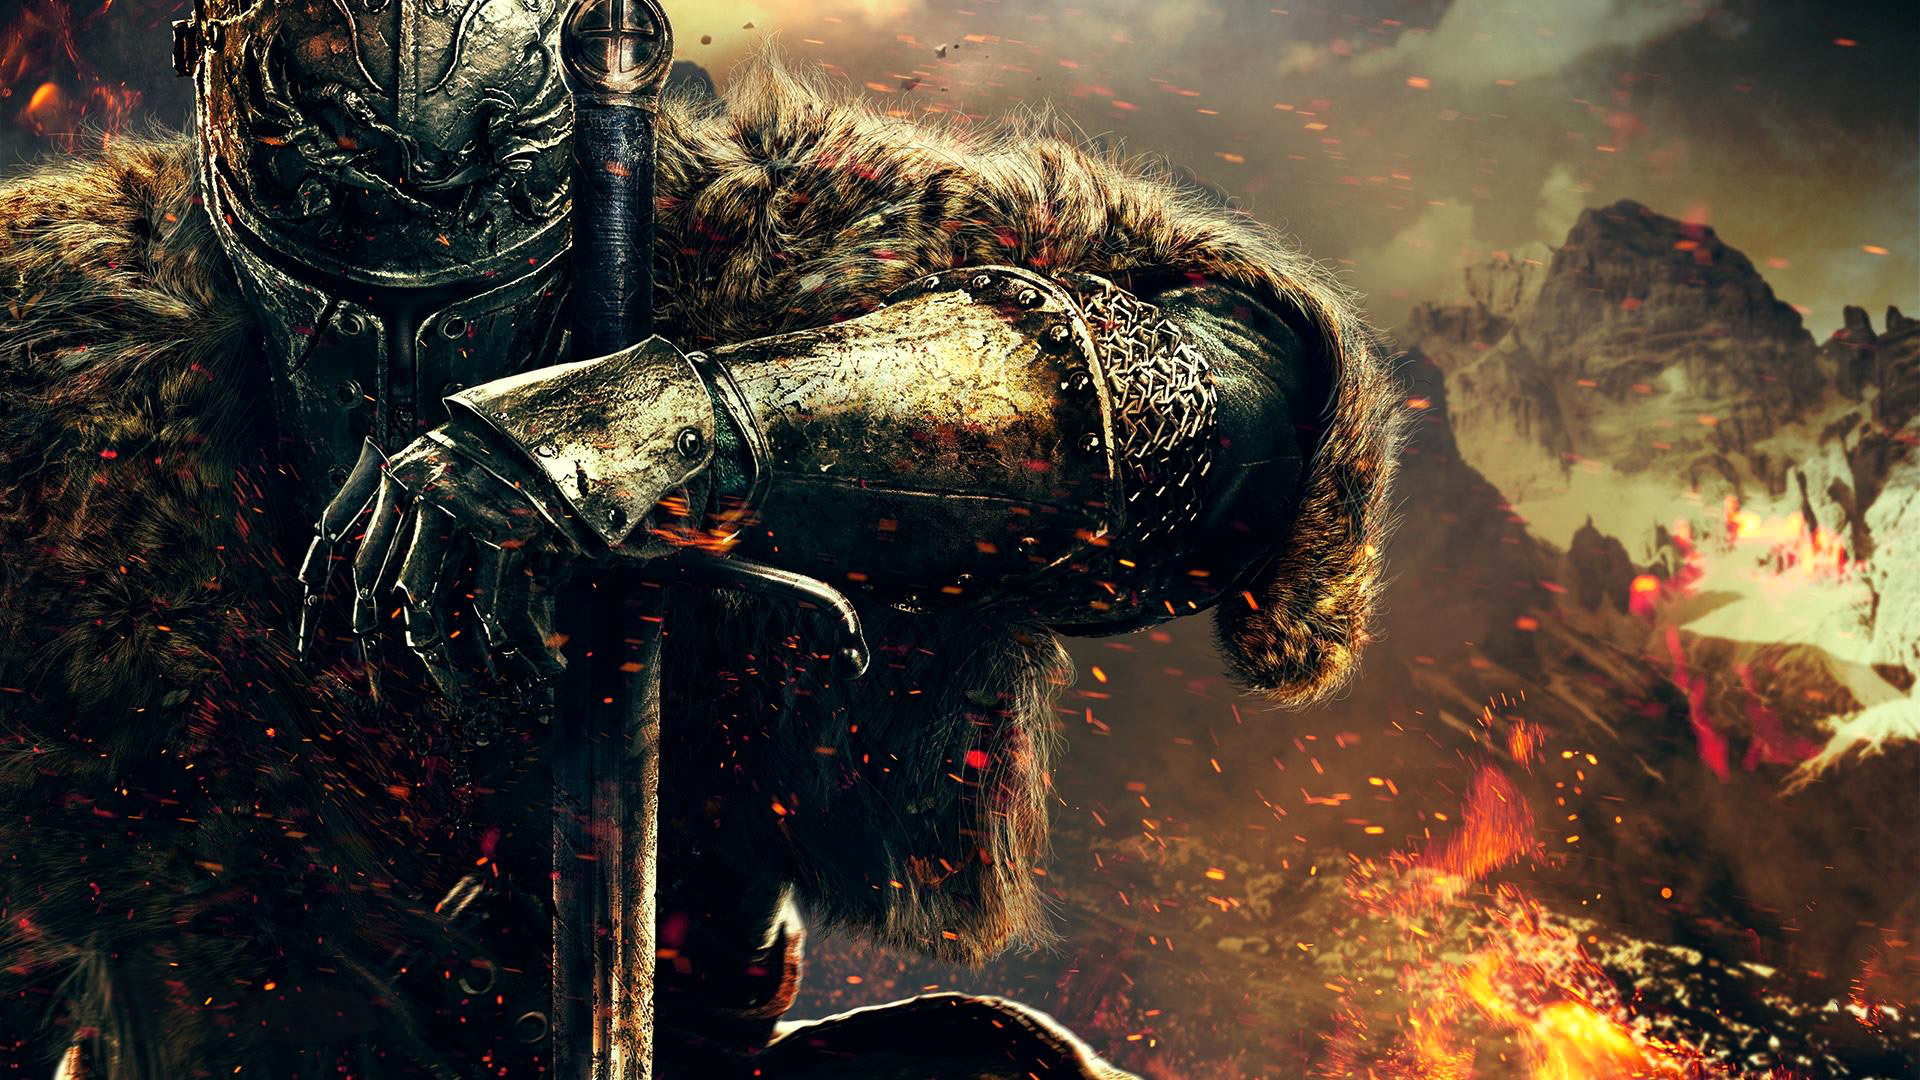 dark souls ii full hd wallpaper and background image | 1920x1080